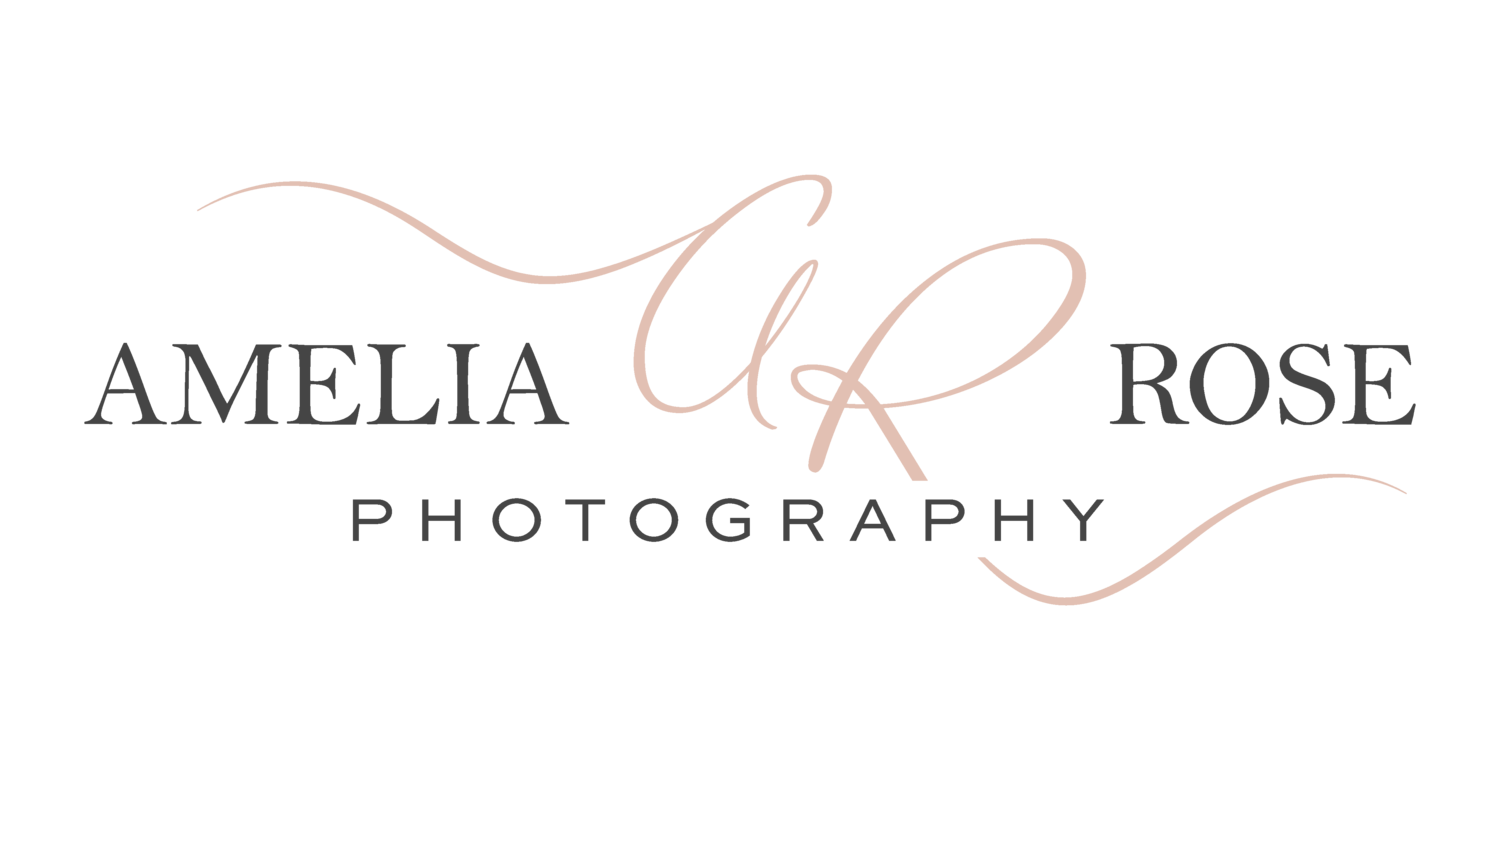 Amelia Rose Photography